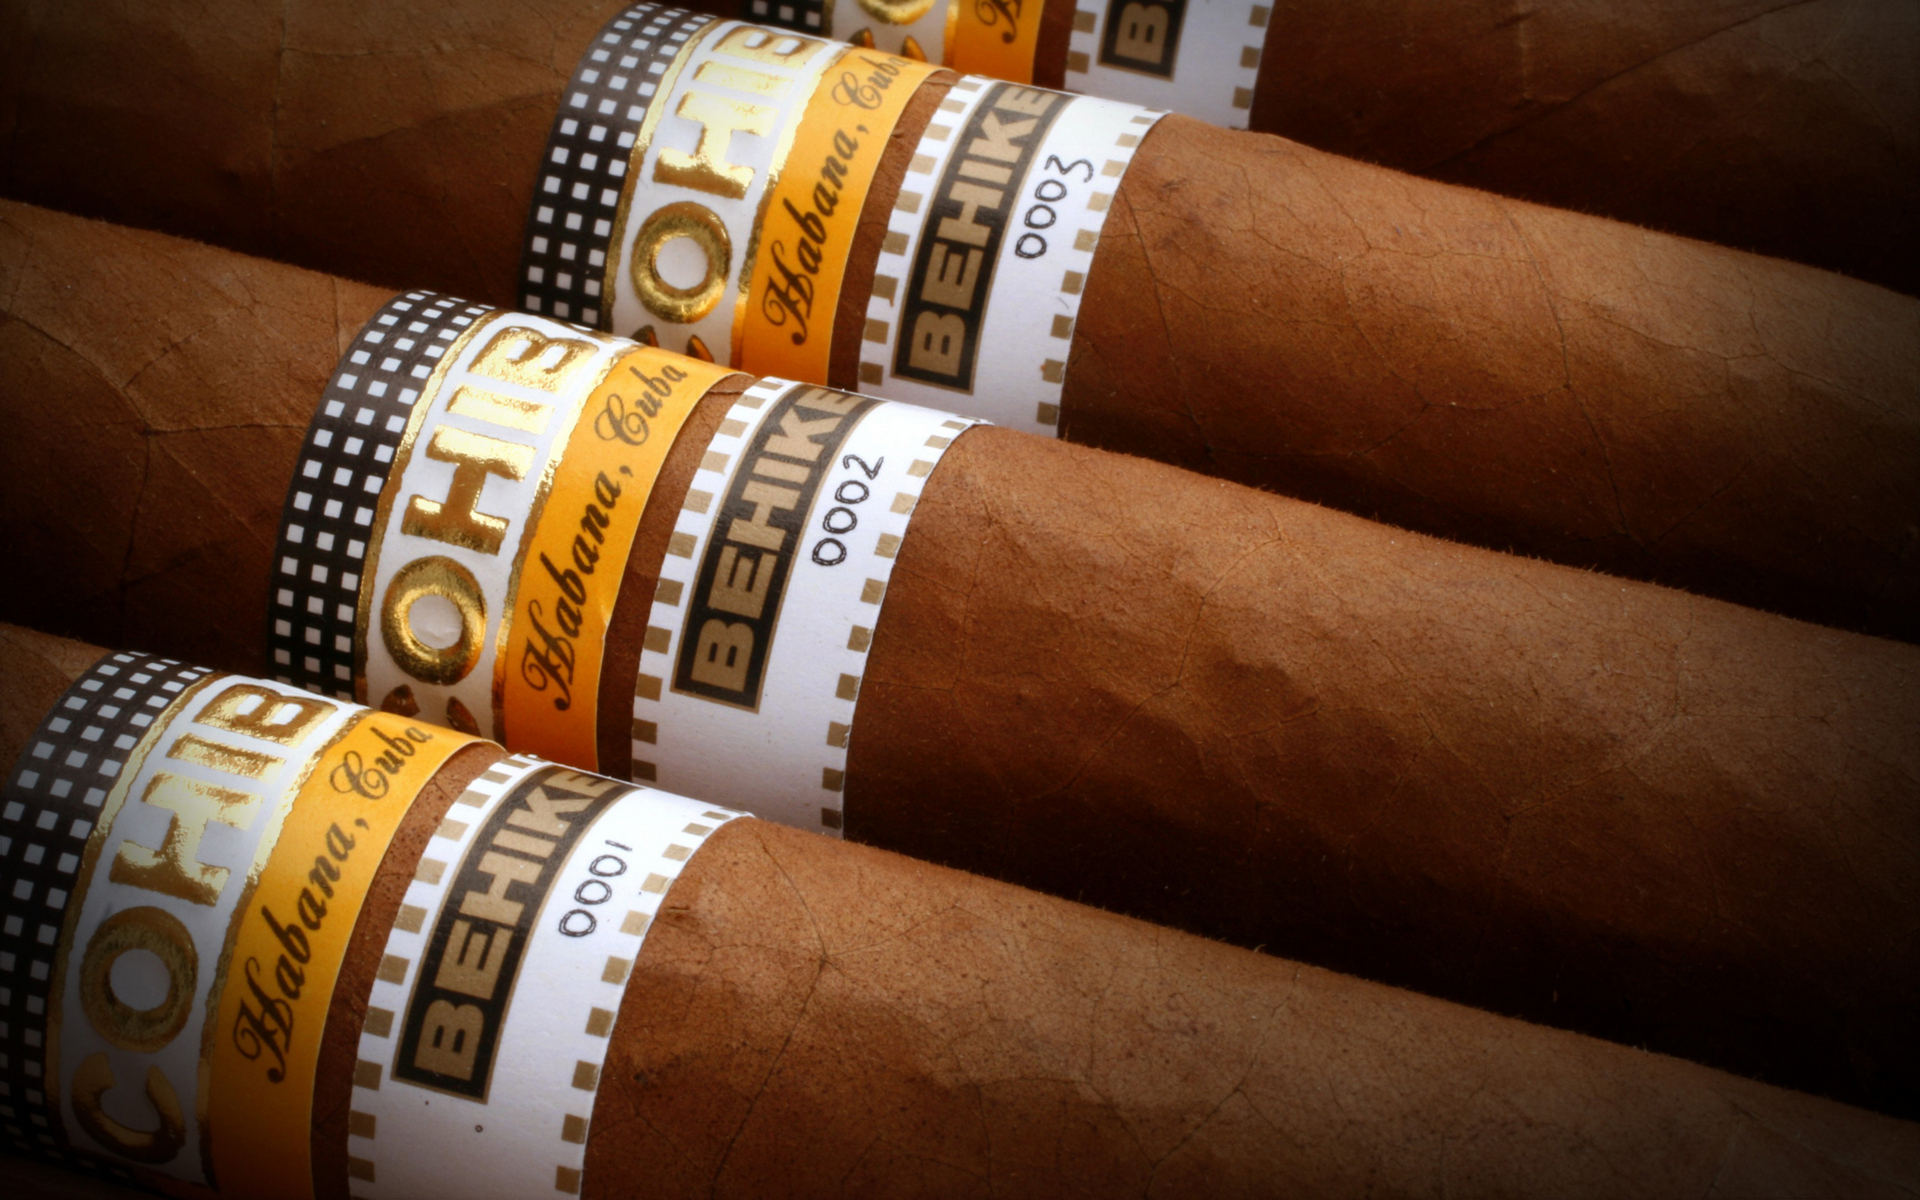 havana cigars wallpapers55com   Best Wallpapers for PCs Laptops 1920x1200